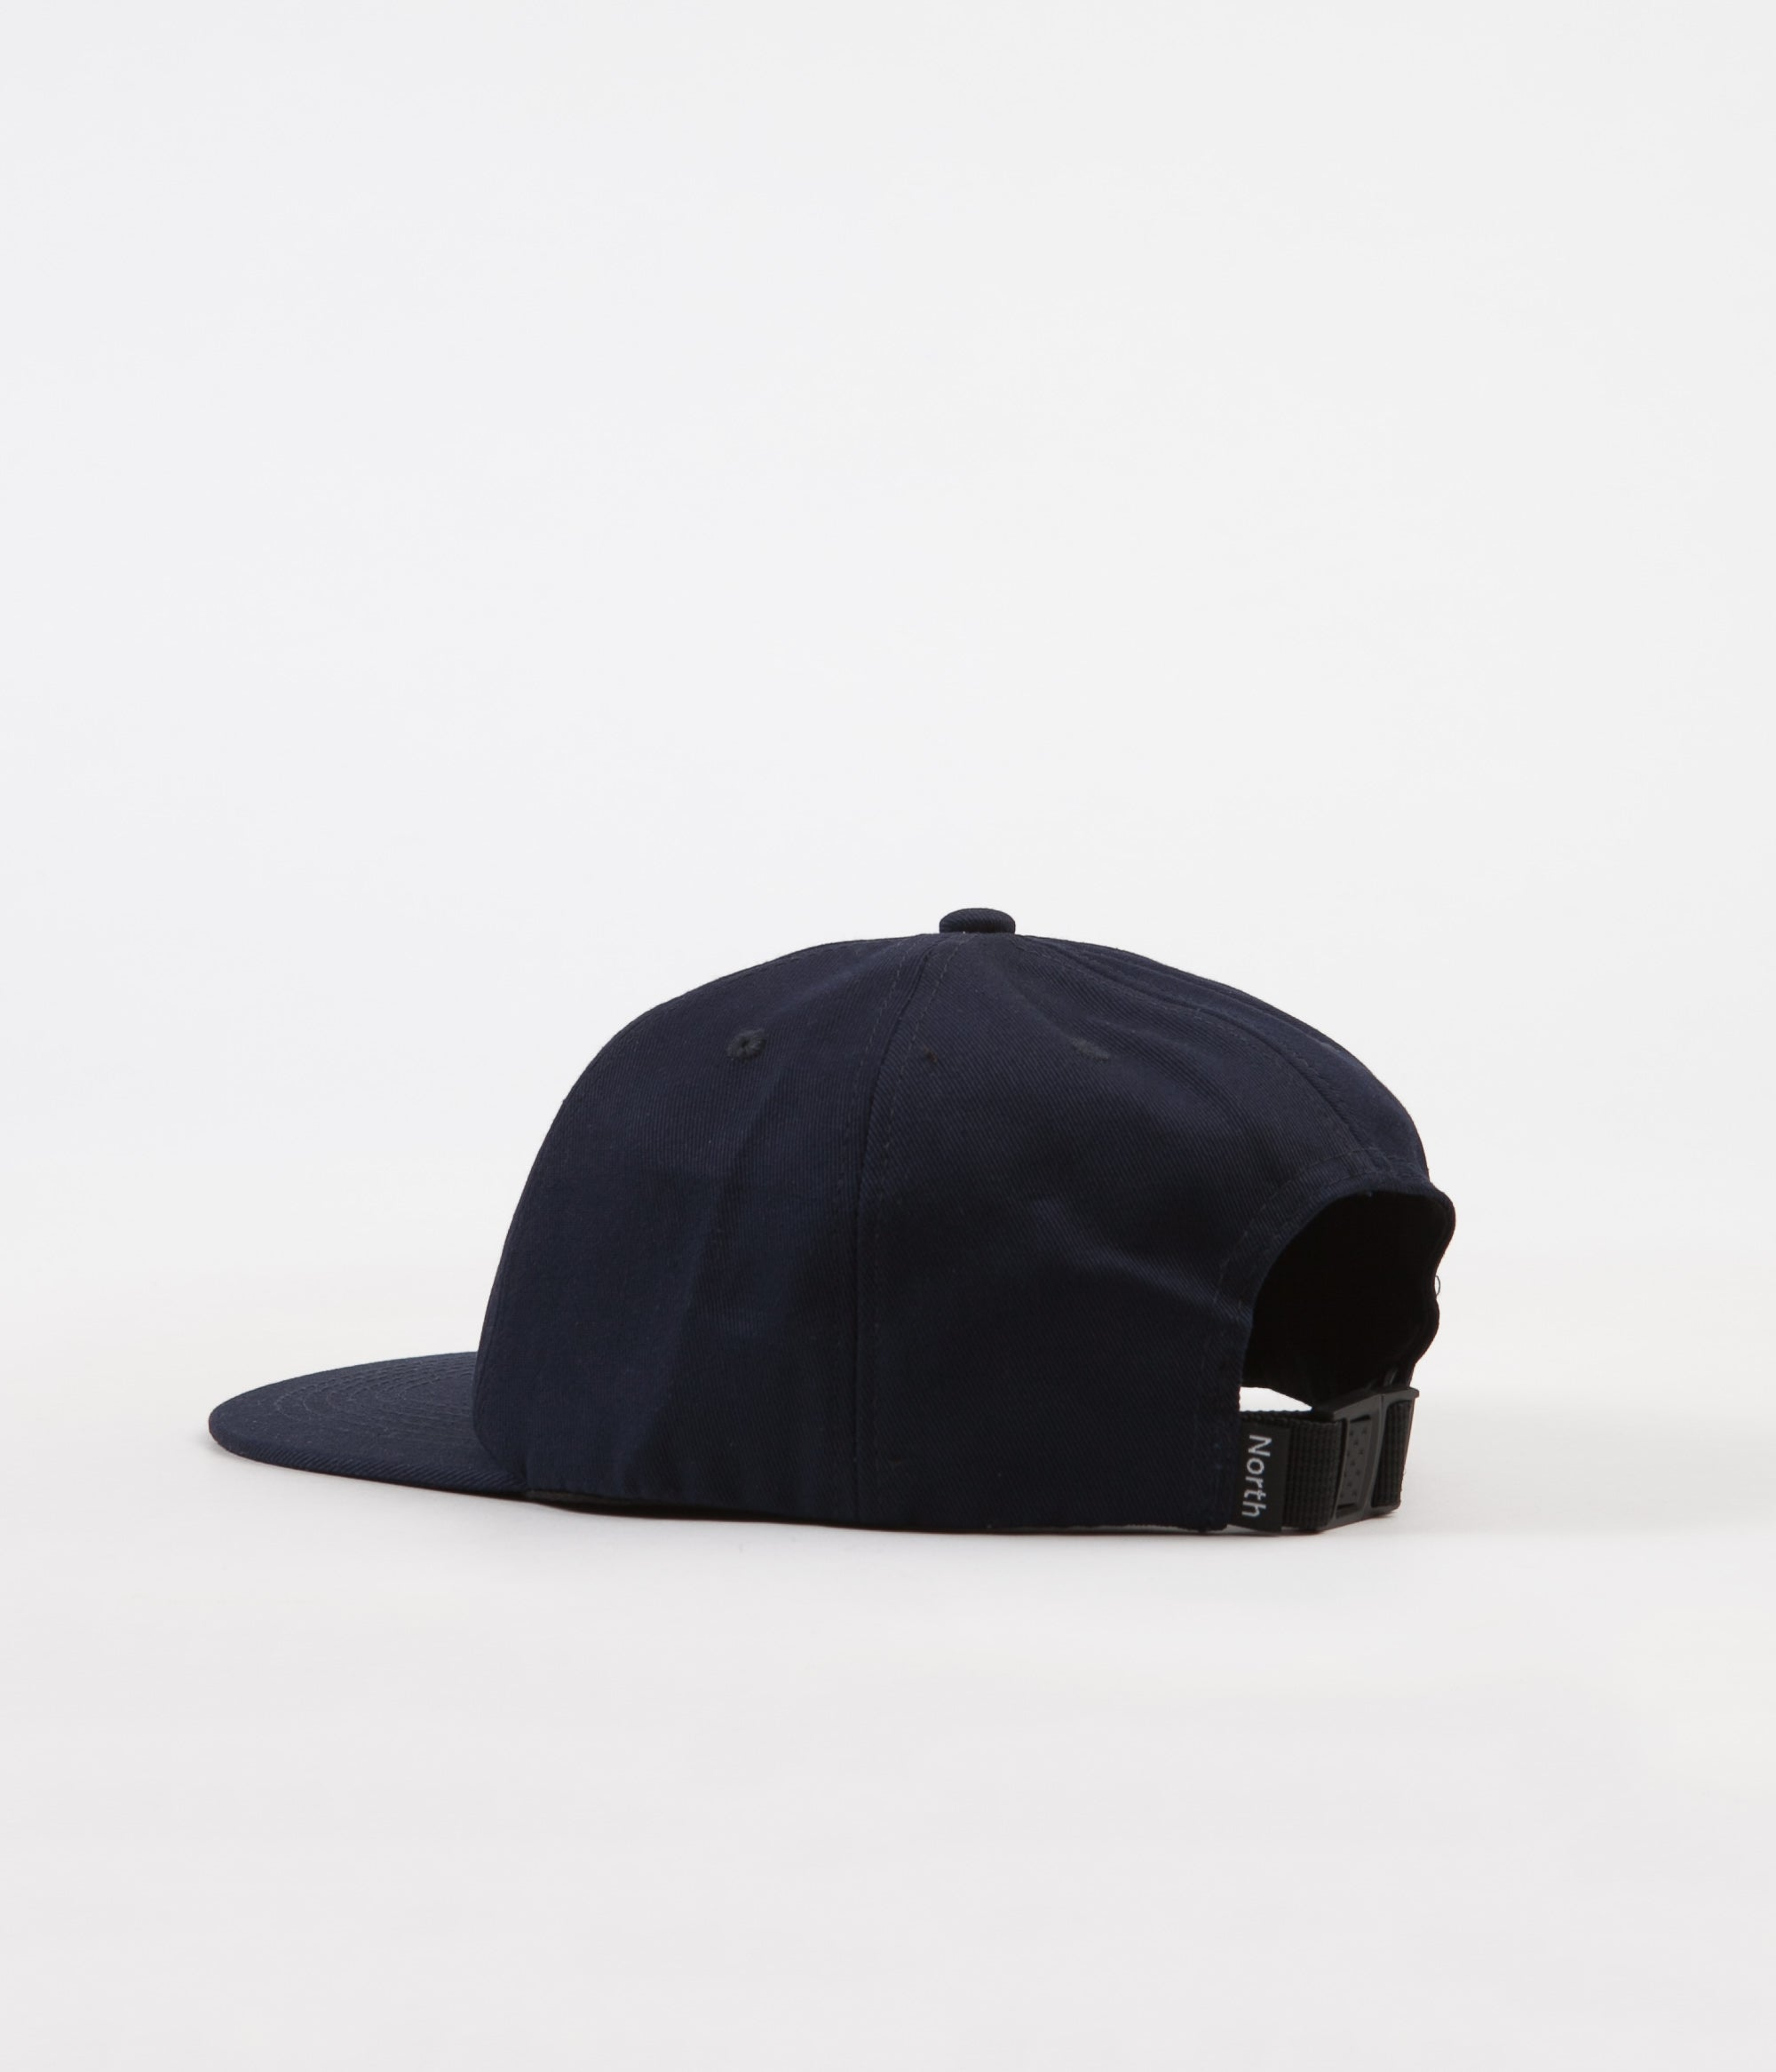 North Skateboard Magazine N Logo 6 Panel Unstructured Cap - Navy / White